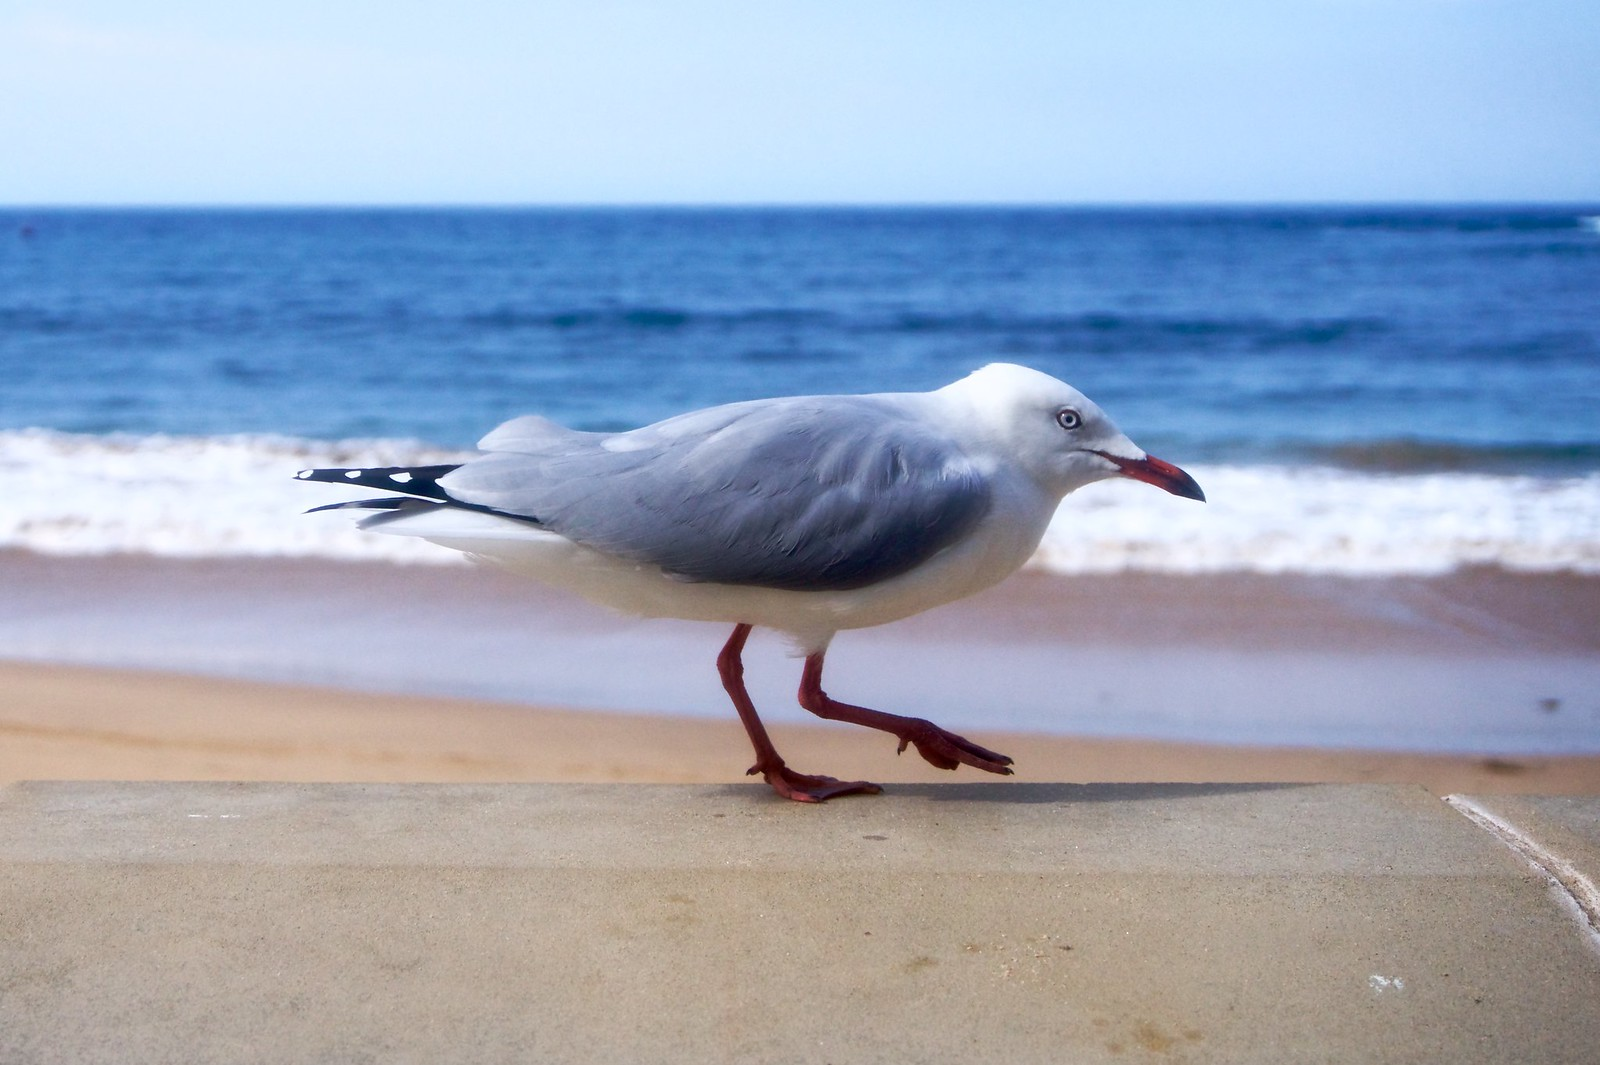 A seagull at Terrigal Beach